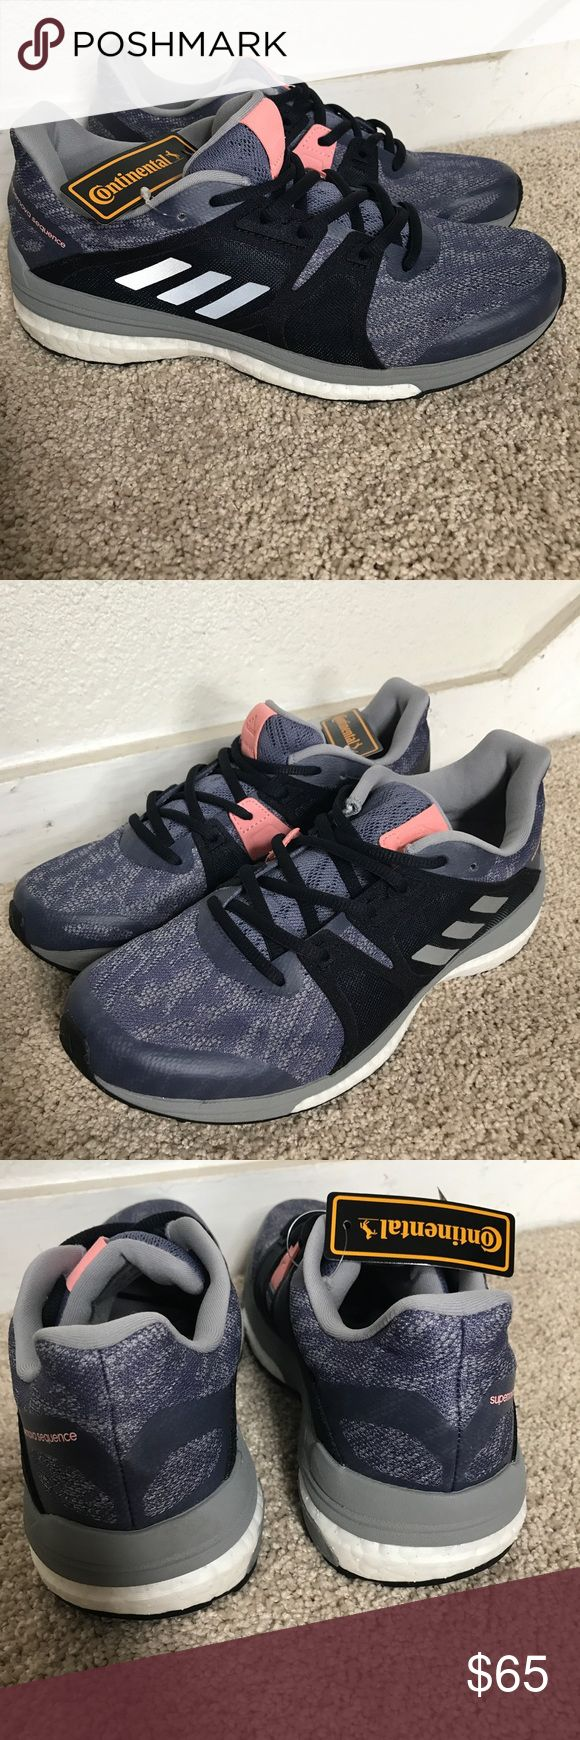 Adidas Supernova Sequence 9 Women's 7.5 Brand new adidas supernova sequence 9. Never been used has tag still on. Comes with the boost insoles. Color is Super Purple/Silver Metallic/Mid Grey. Please see pics. Questions please ask. Reasonable offers accepted adidas Shoes Athletic Shoes